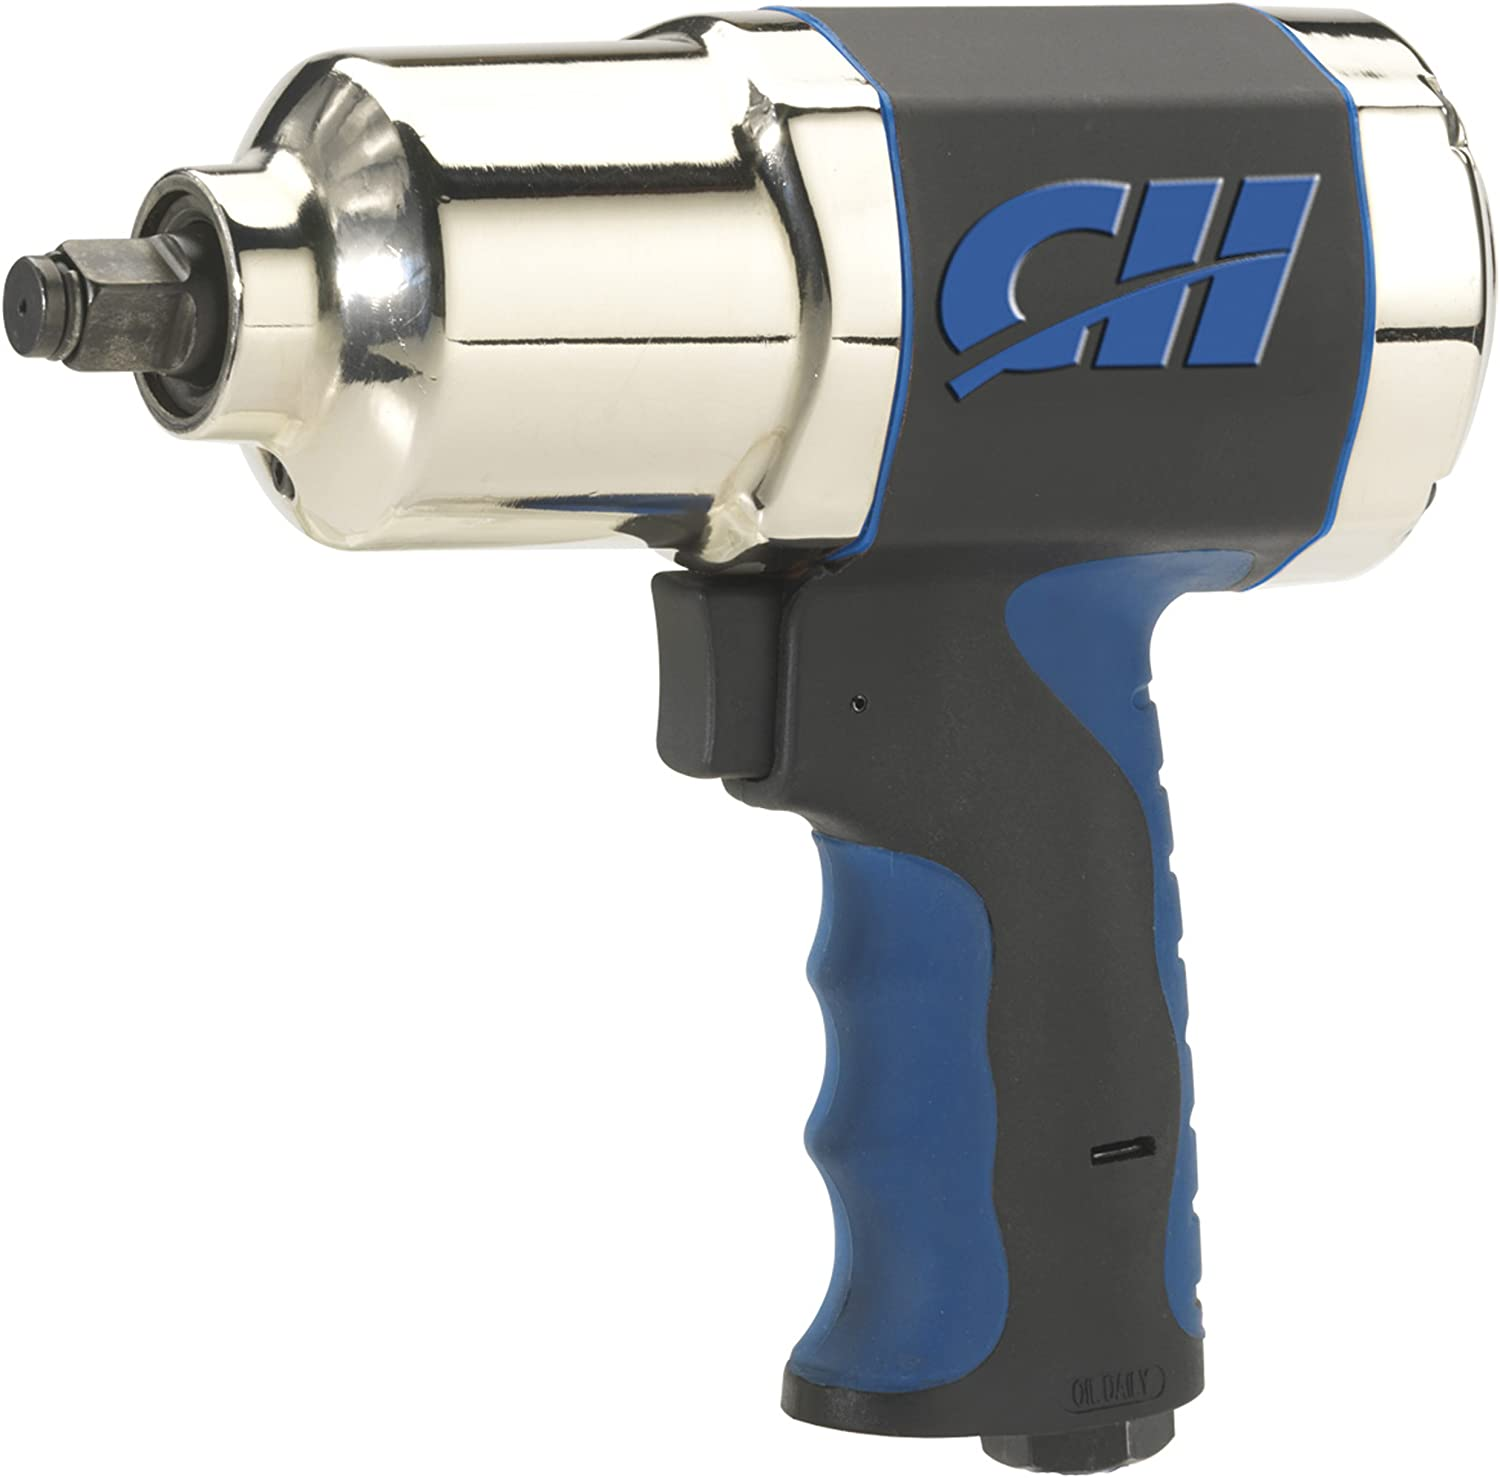 "best air impact wrench: Campbell Hausfeld 1/2"" TL140200AV"